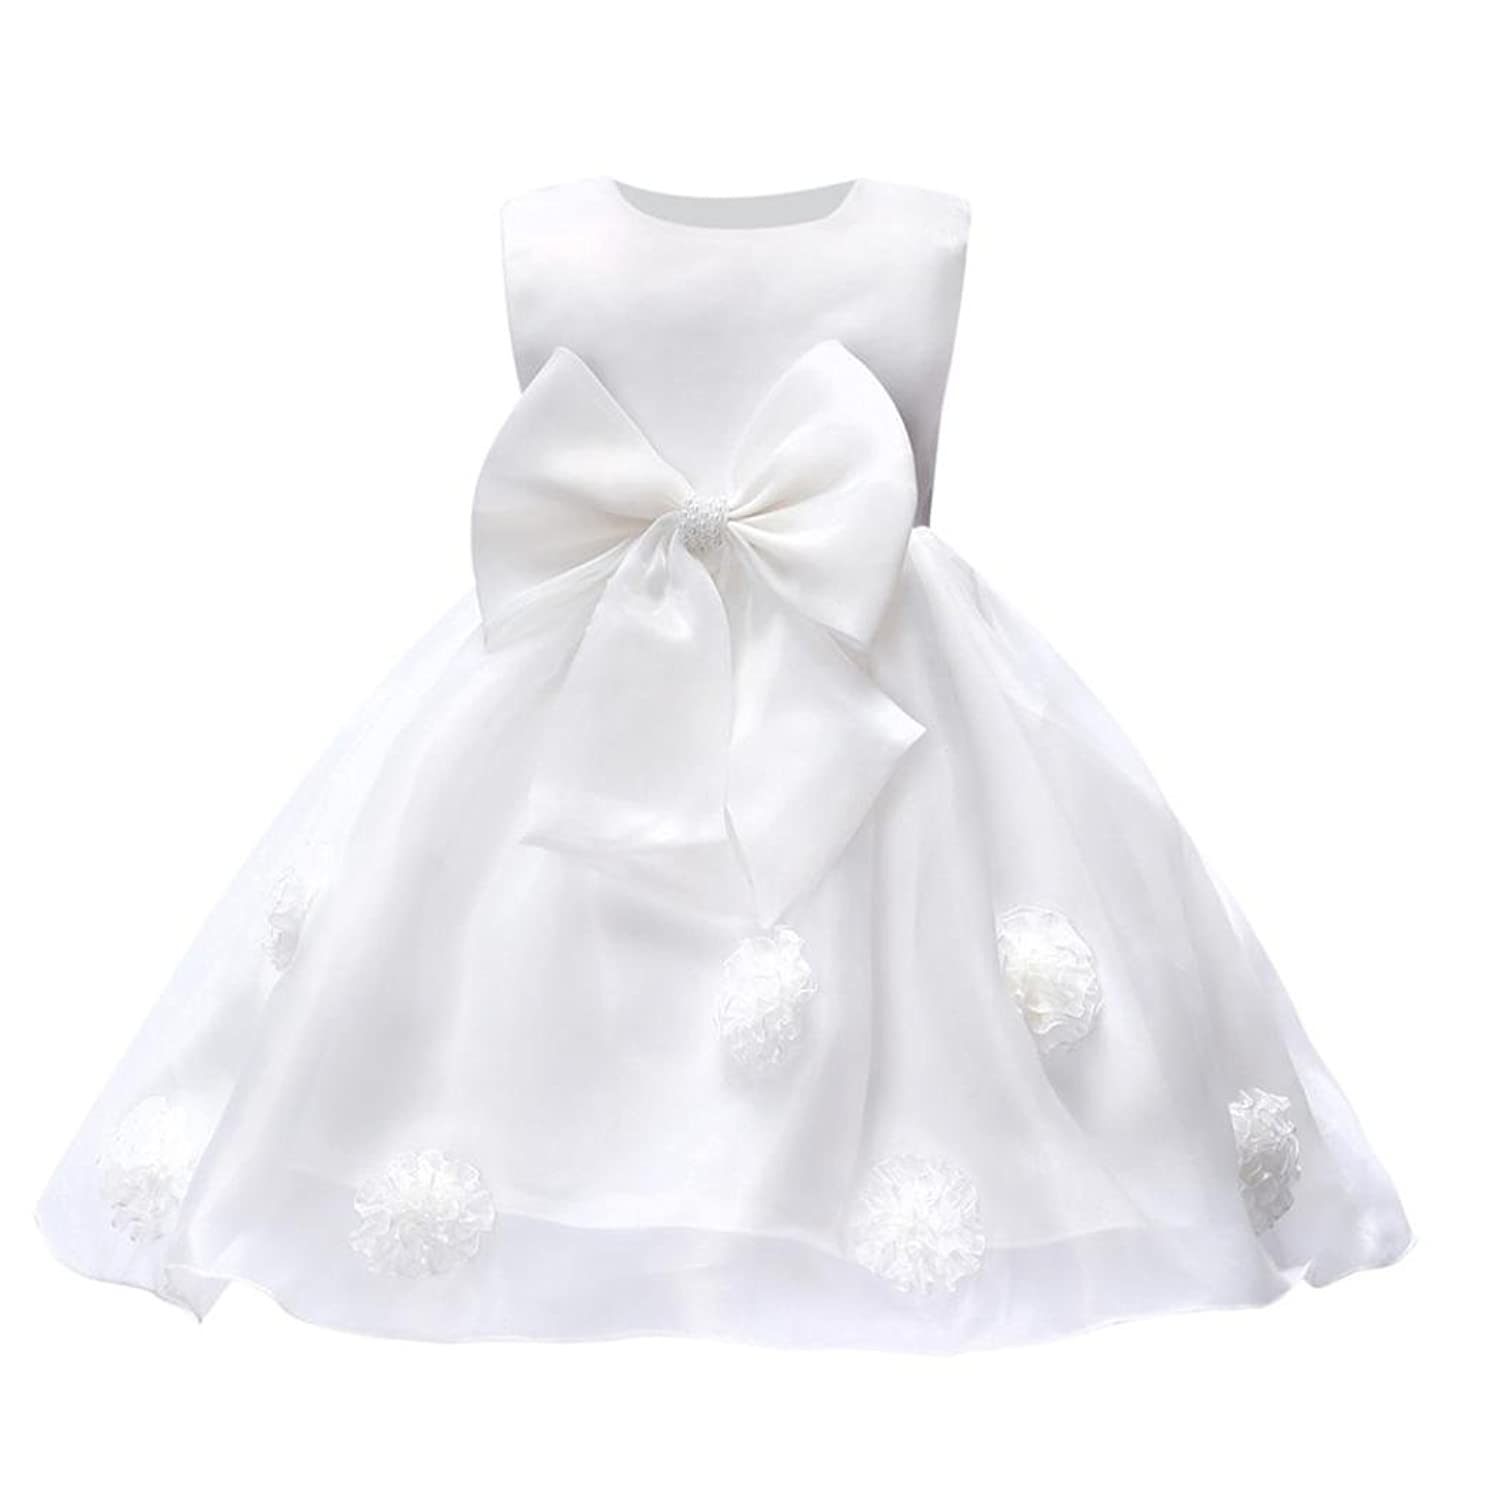 SUNBIBE Cute 0 2 Years Old Flower Baby Girl Princess Bridesmaid Pageant Gown Birthday Party